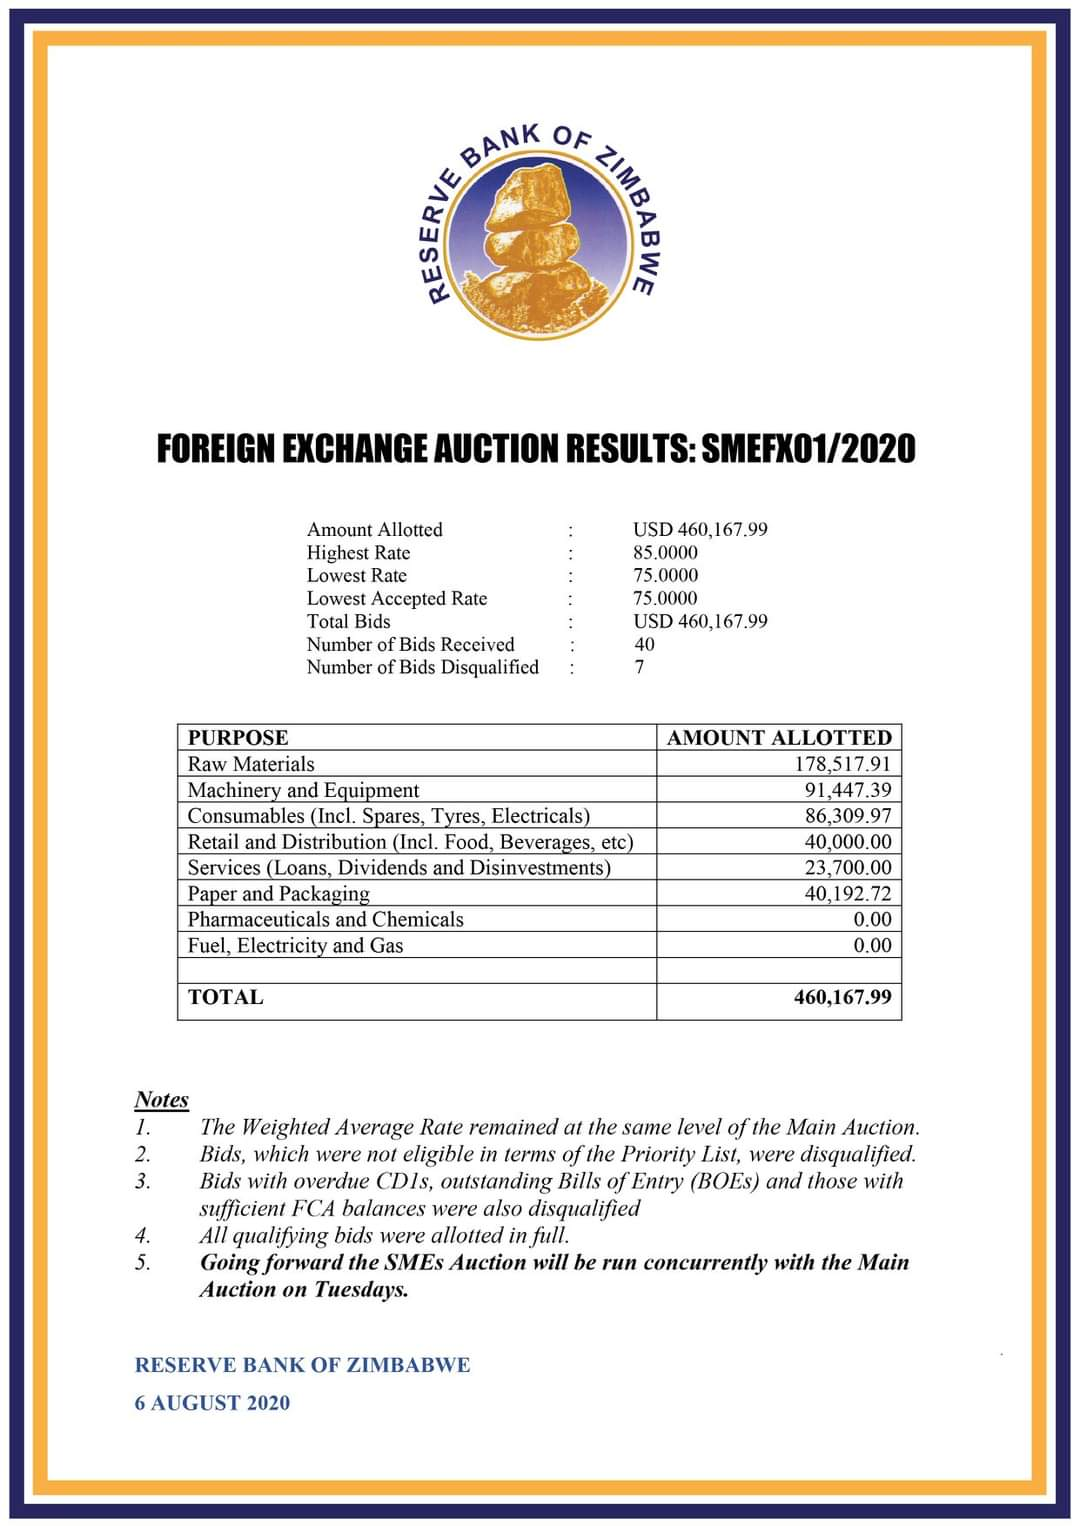 SME auction results